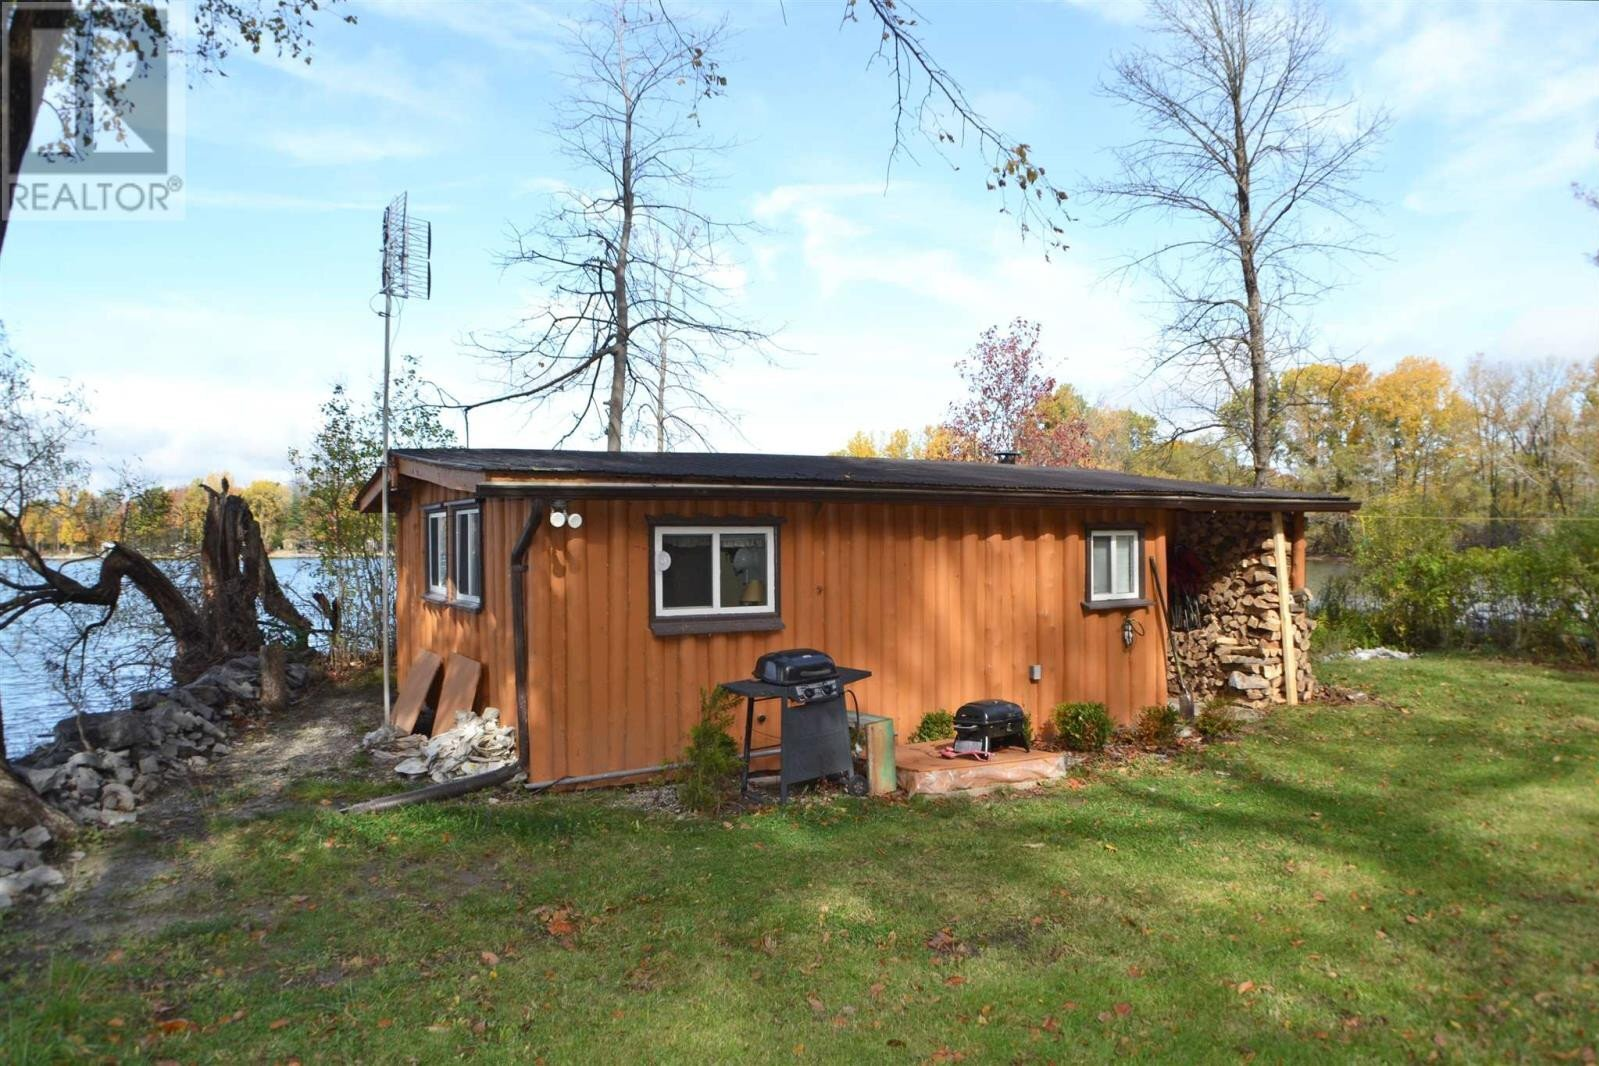 House for sale at 83 S Shore Perch Cove Ln Napanee Ontario - MLS: K20006692